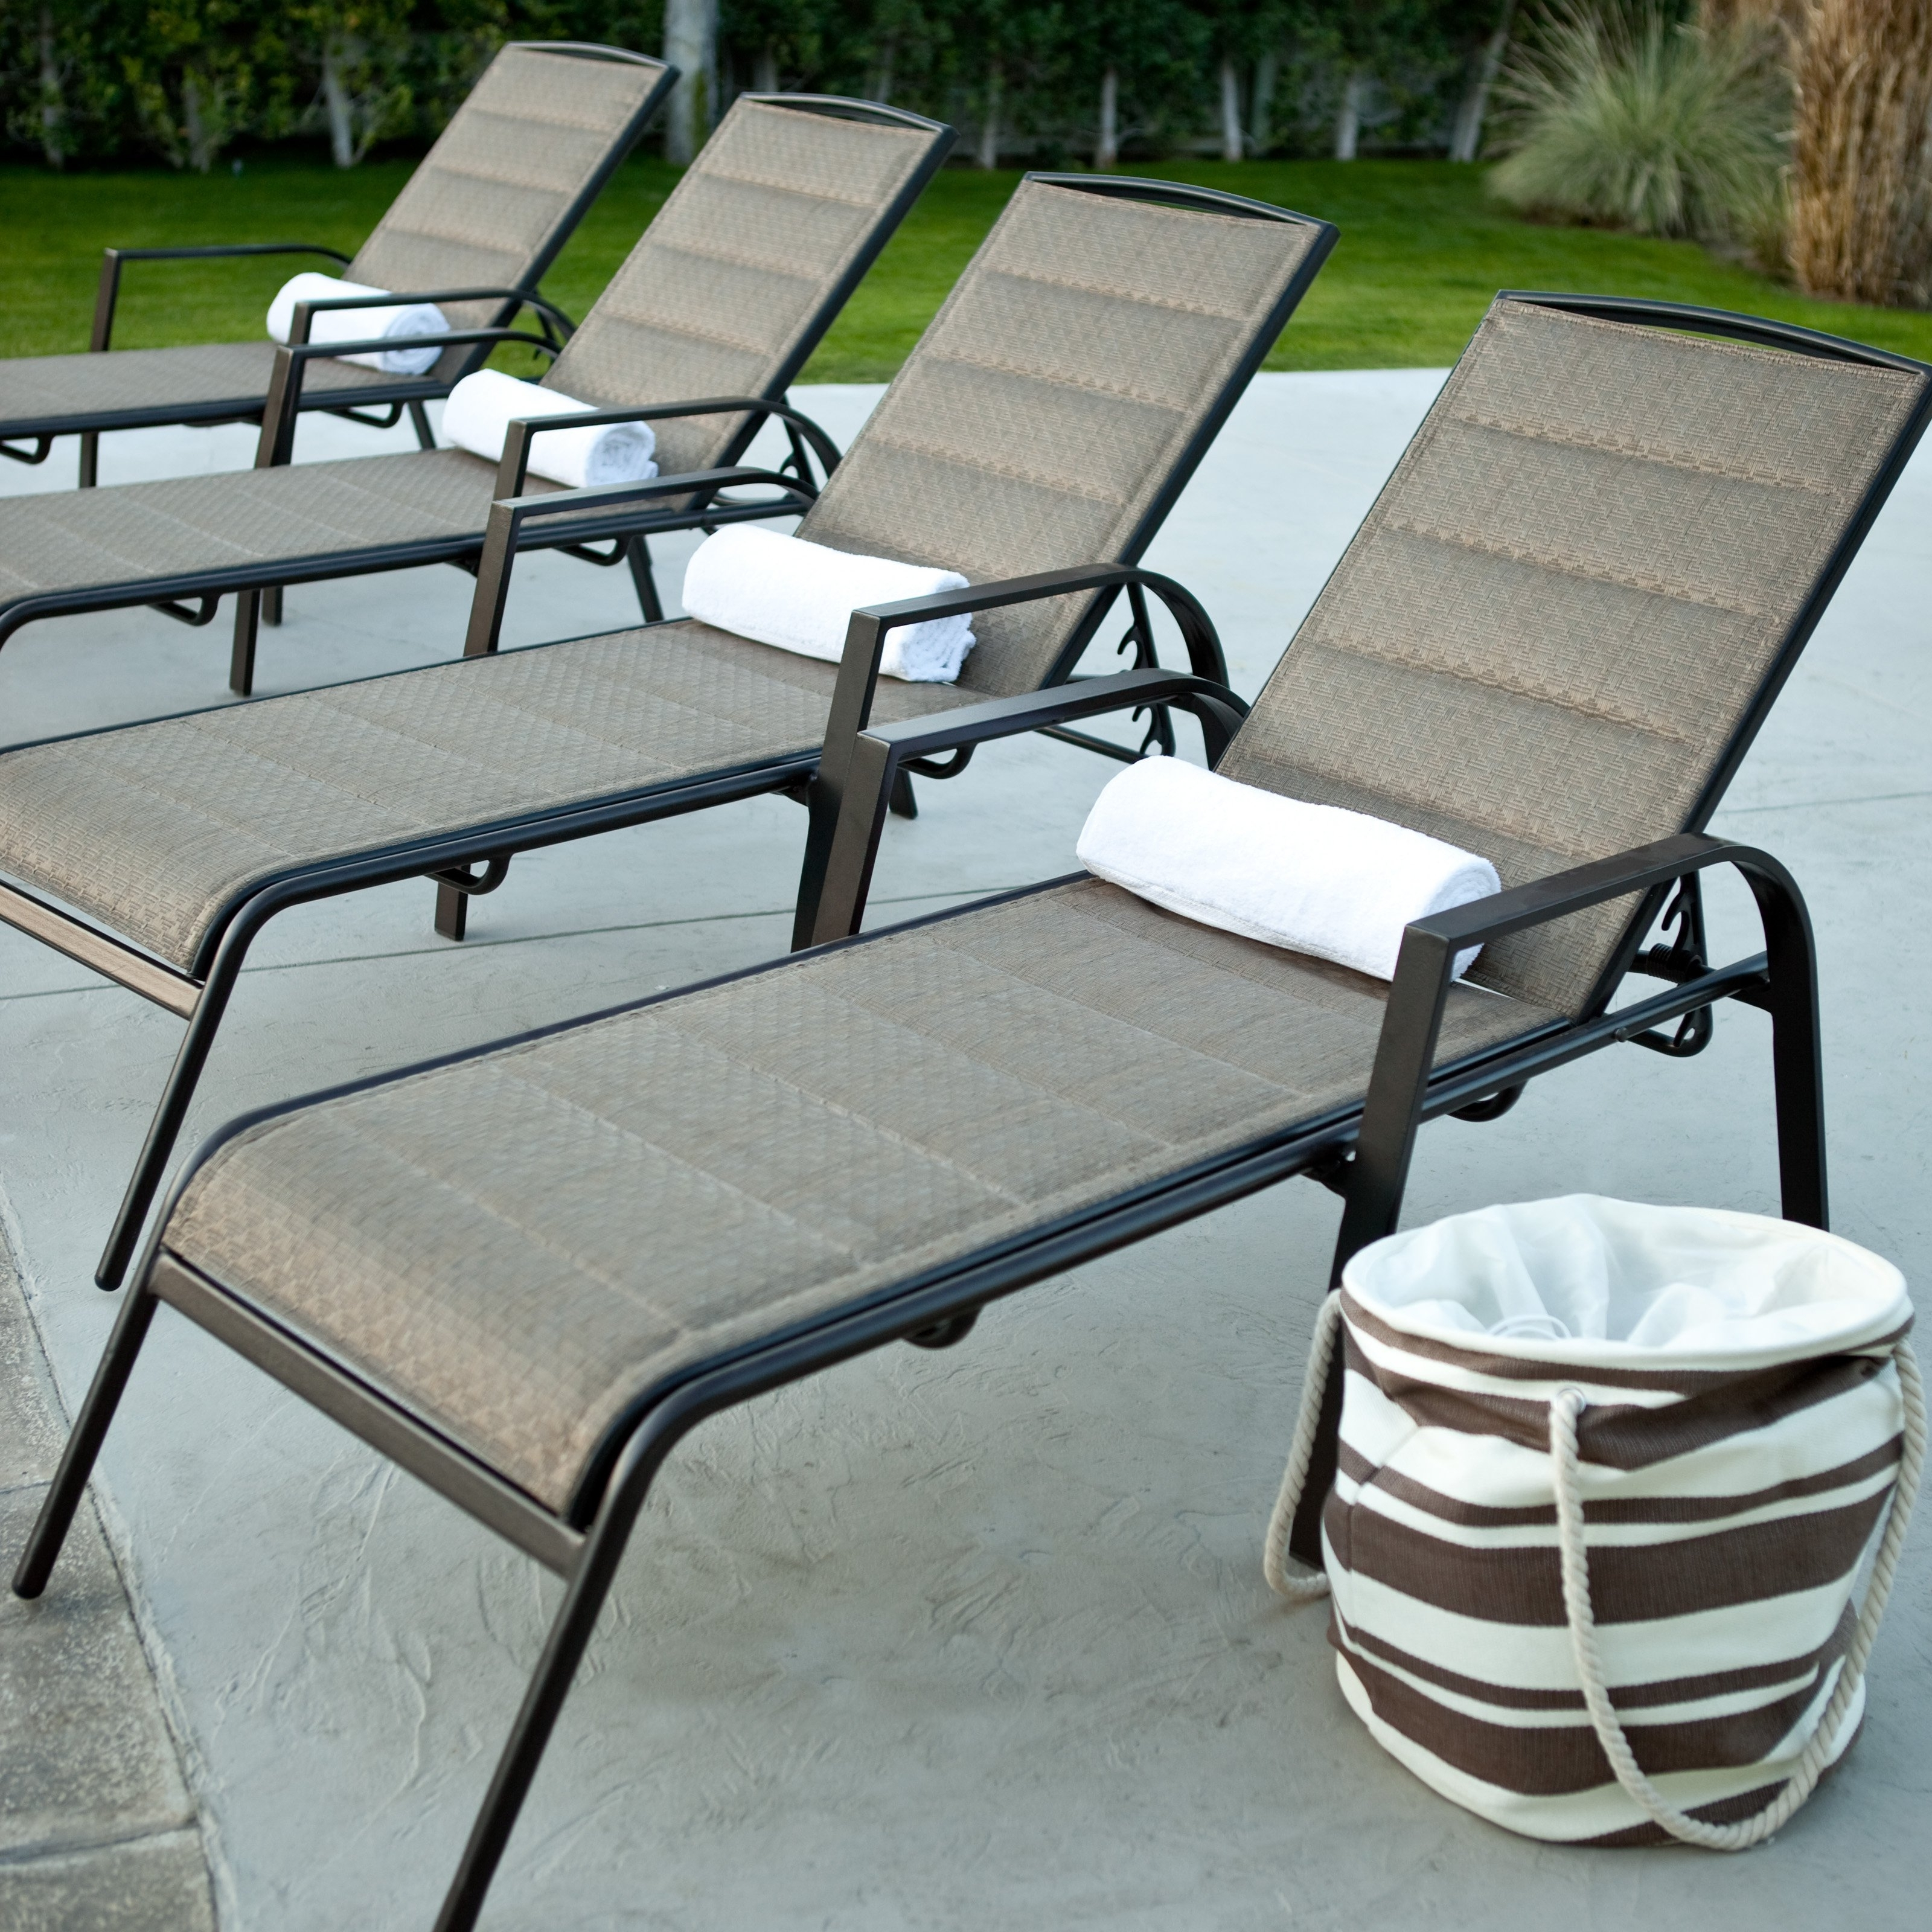 Outdoor Patio Chaise Lounge Chairs • Lounge Chairs Ideas In Most Recent Patio Chaise Lounge Chairs (View 14 of 15)